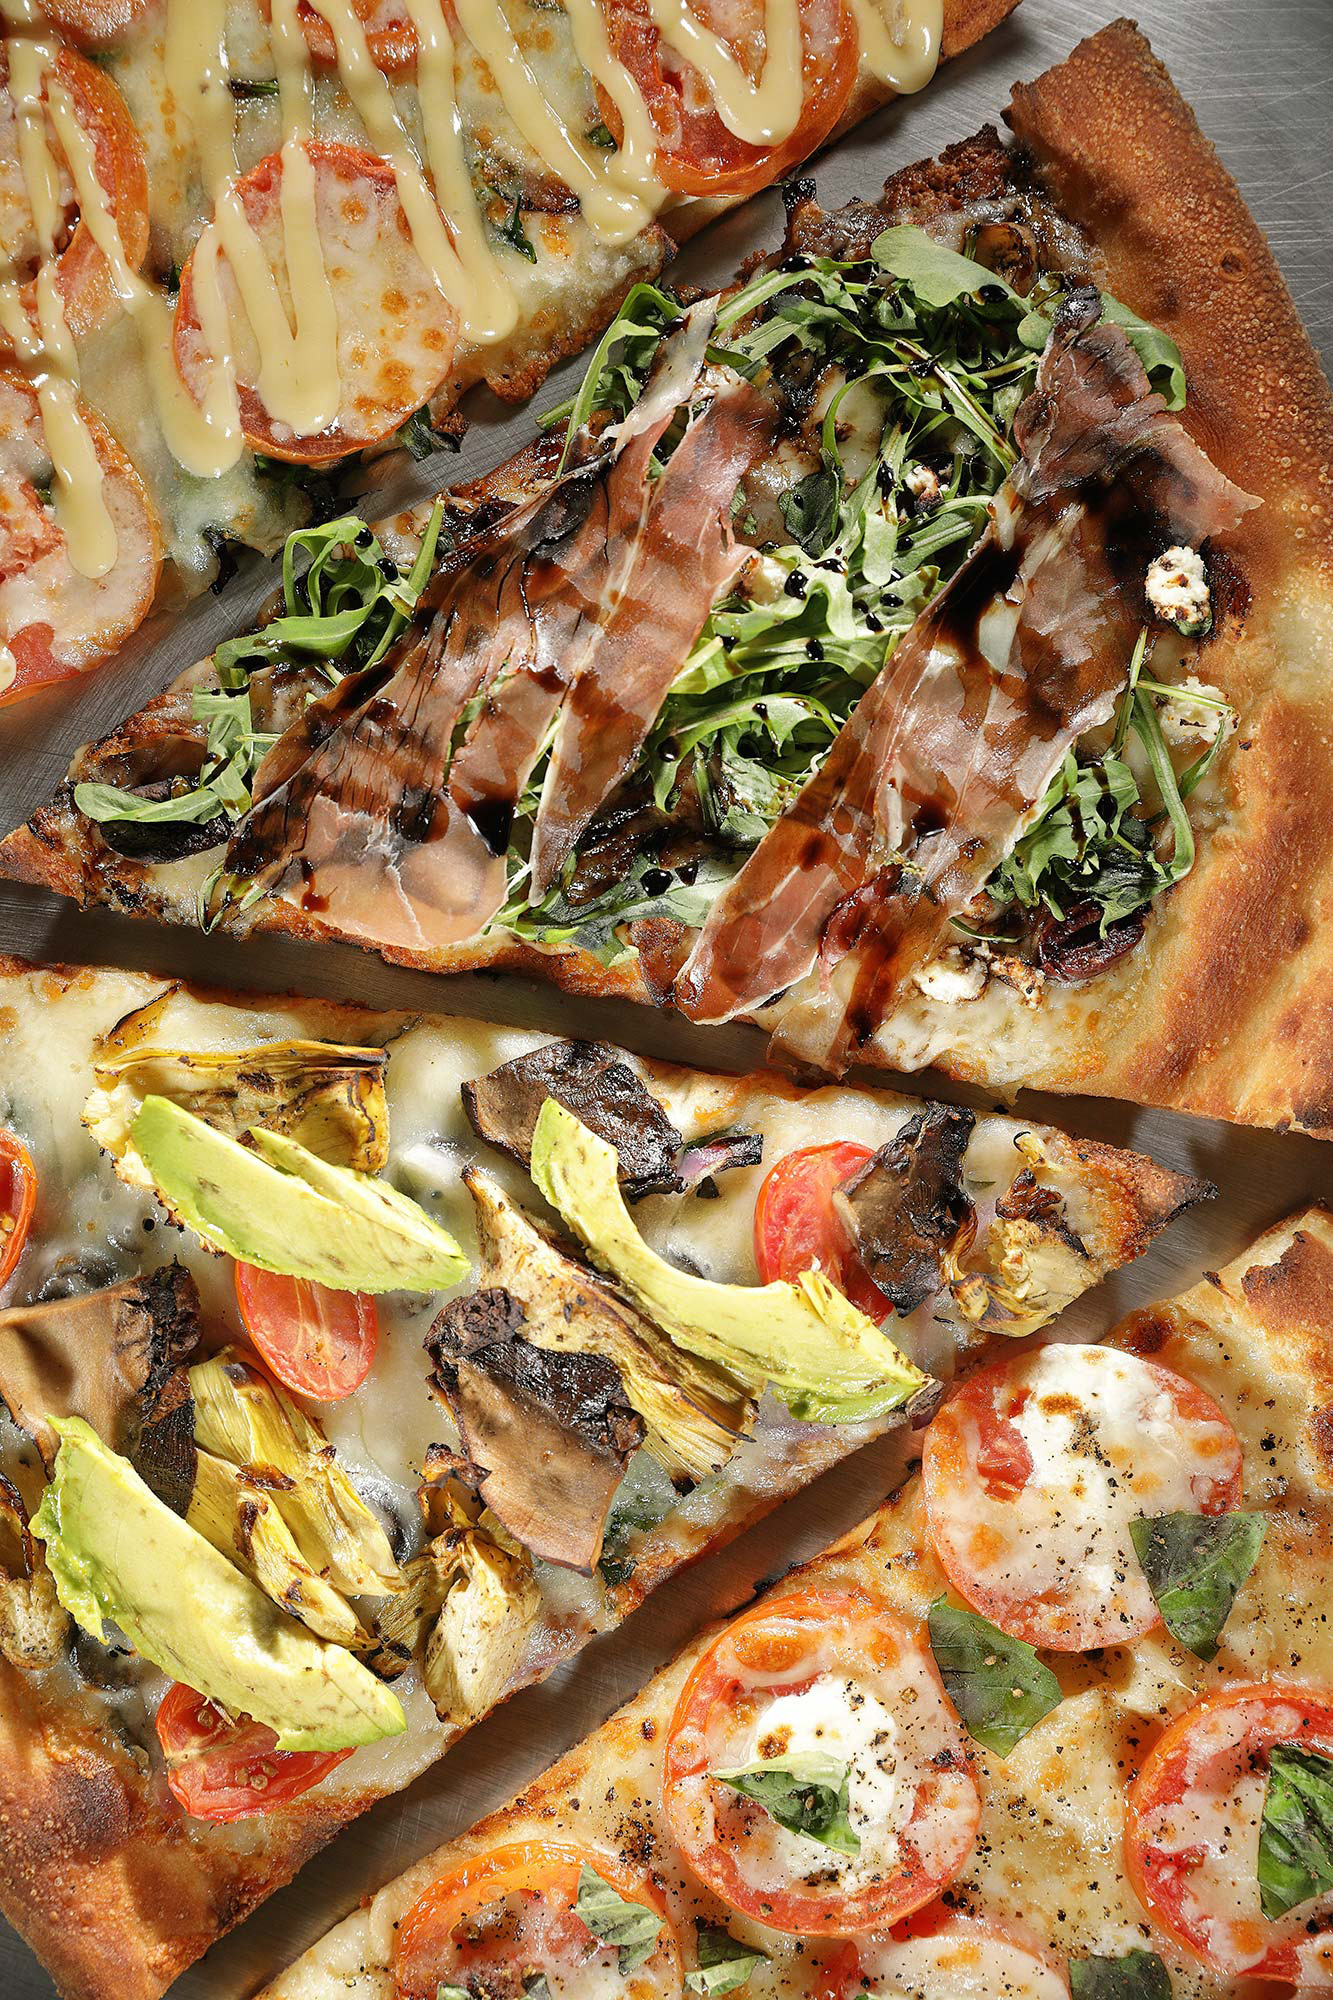 Southside Slice Rosemary Beach Florida